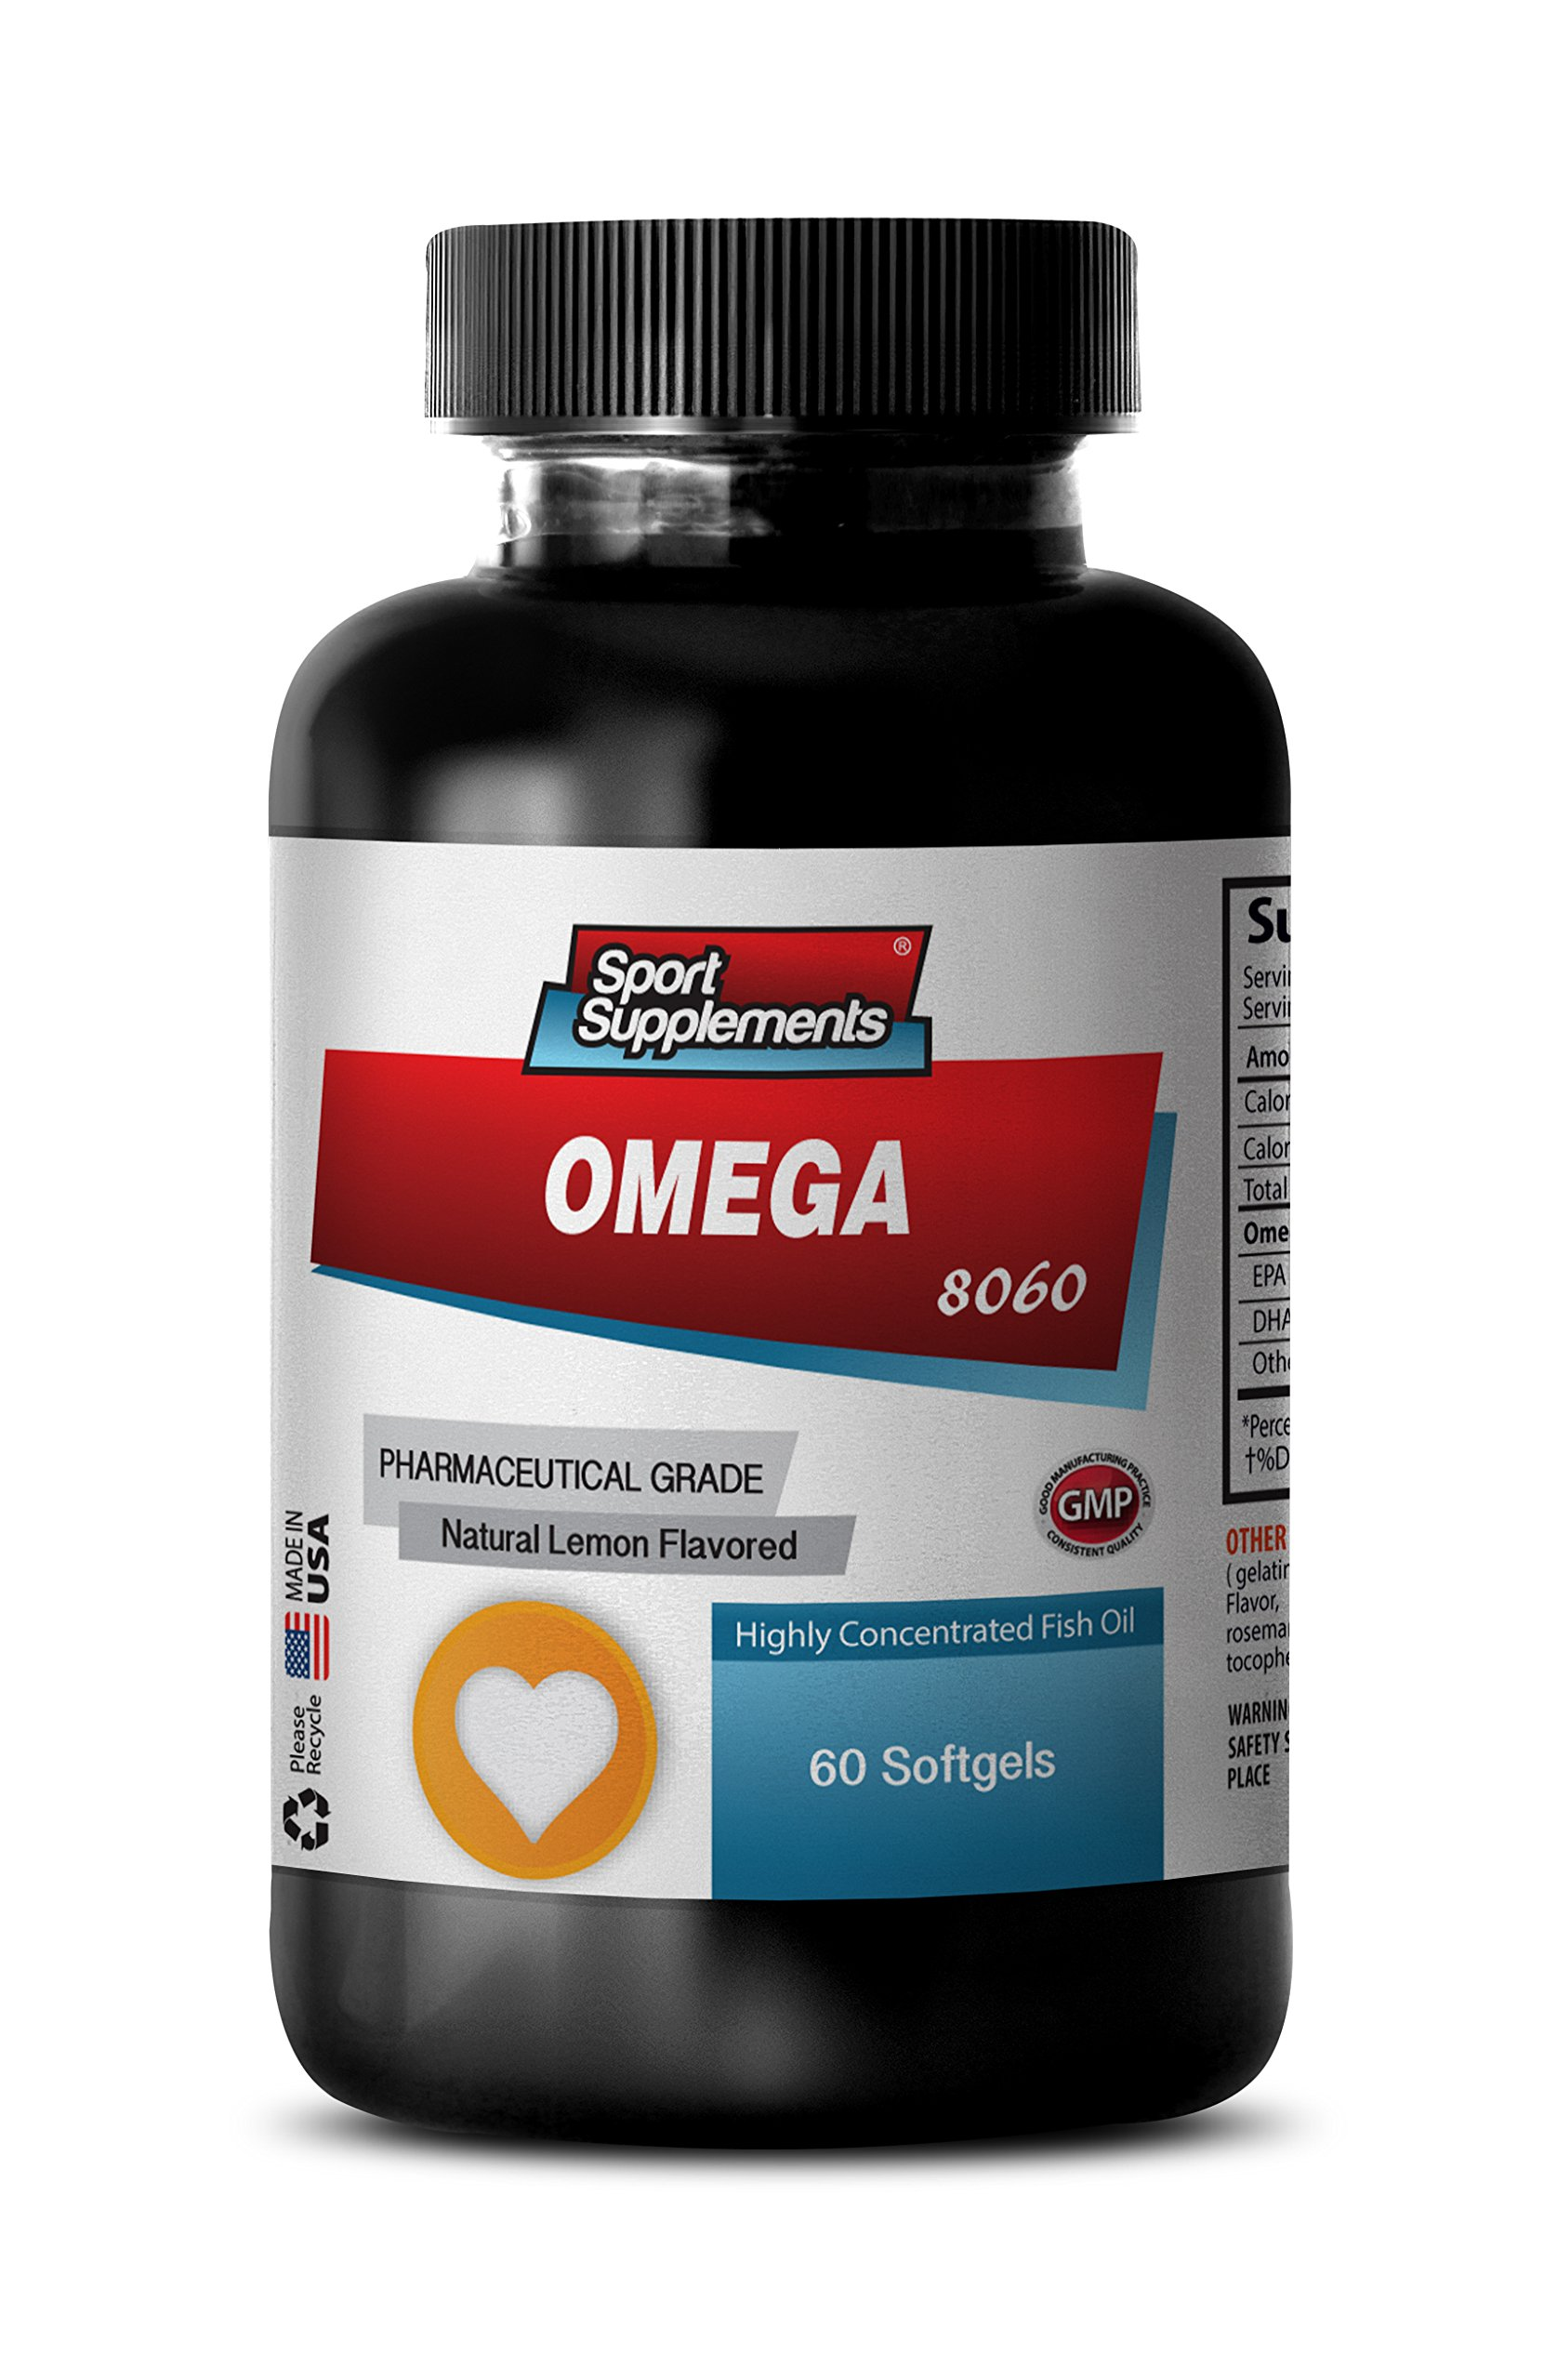 Immune support natures sunshine - OMEGA 8060 FATTY ACIDS 1500mg (Highly Concentrated Fish Oil - Pharmaceutical Grade) - Omega 3 and 6 supplements - 1 Bottle 60 Softgels by Sport Supplements